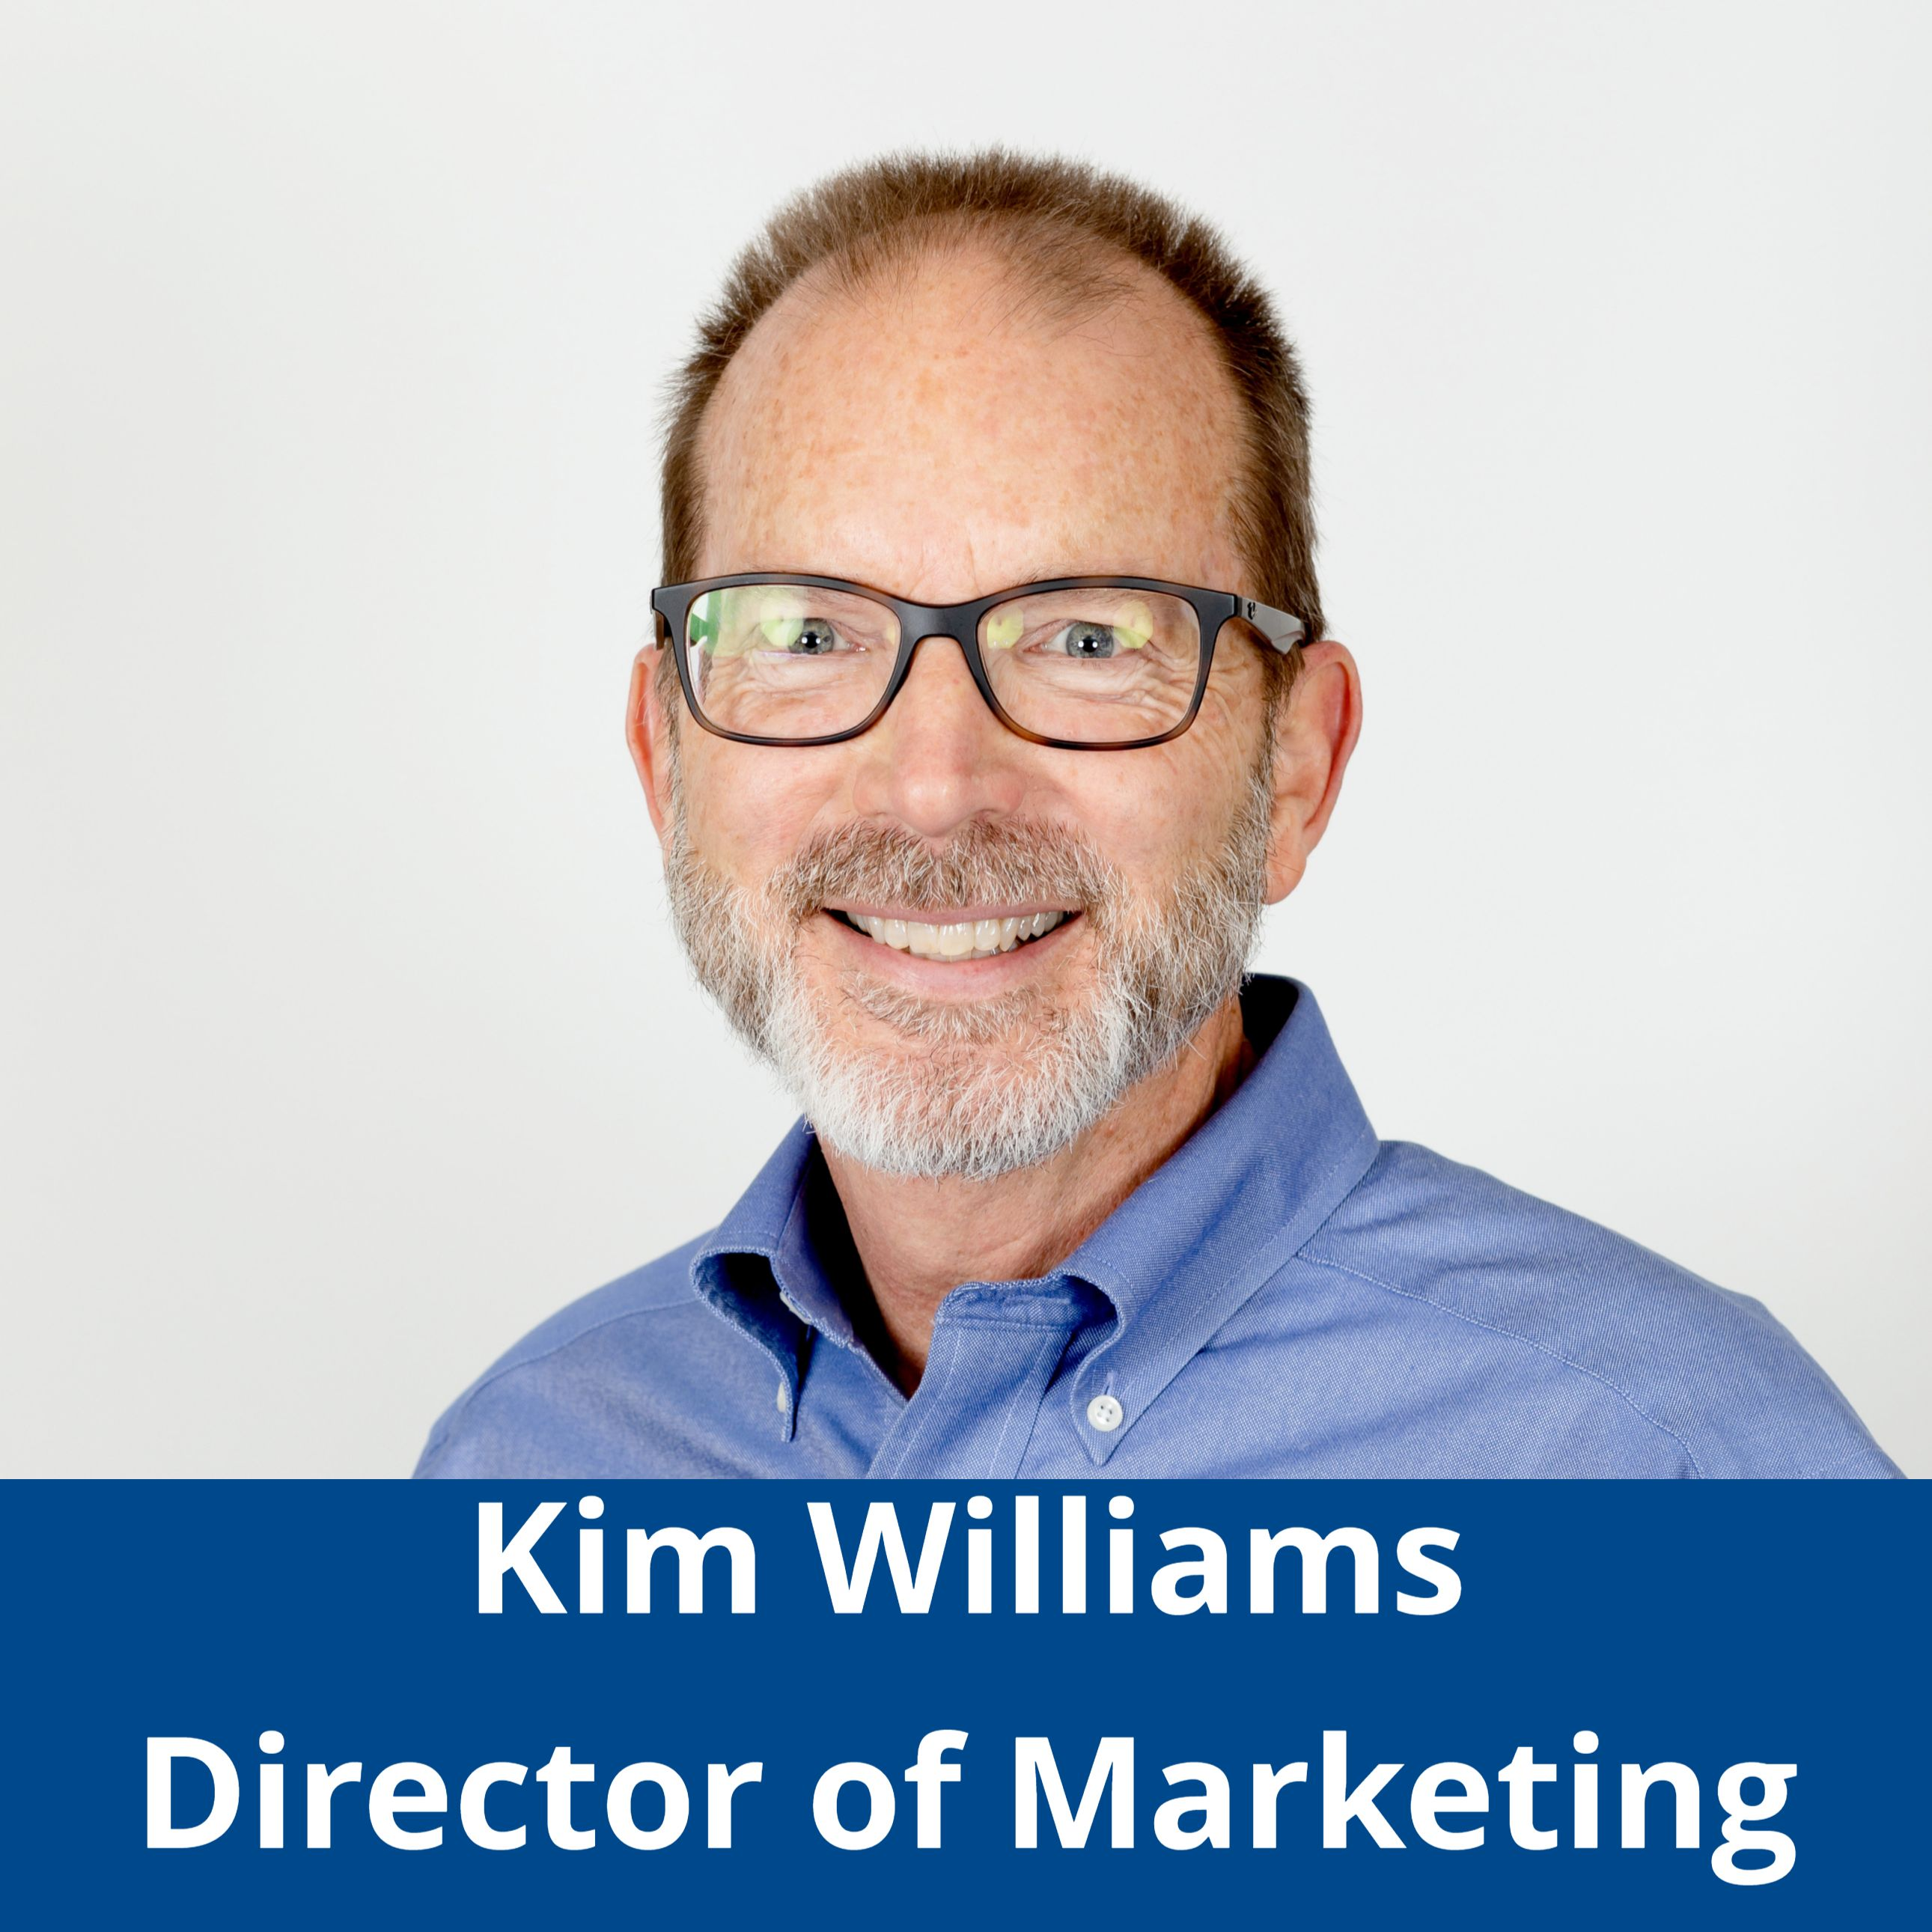 Kim Williams, Director of Marketing